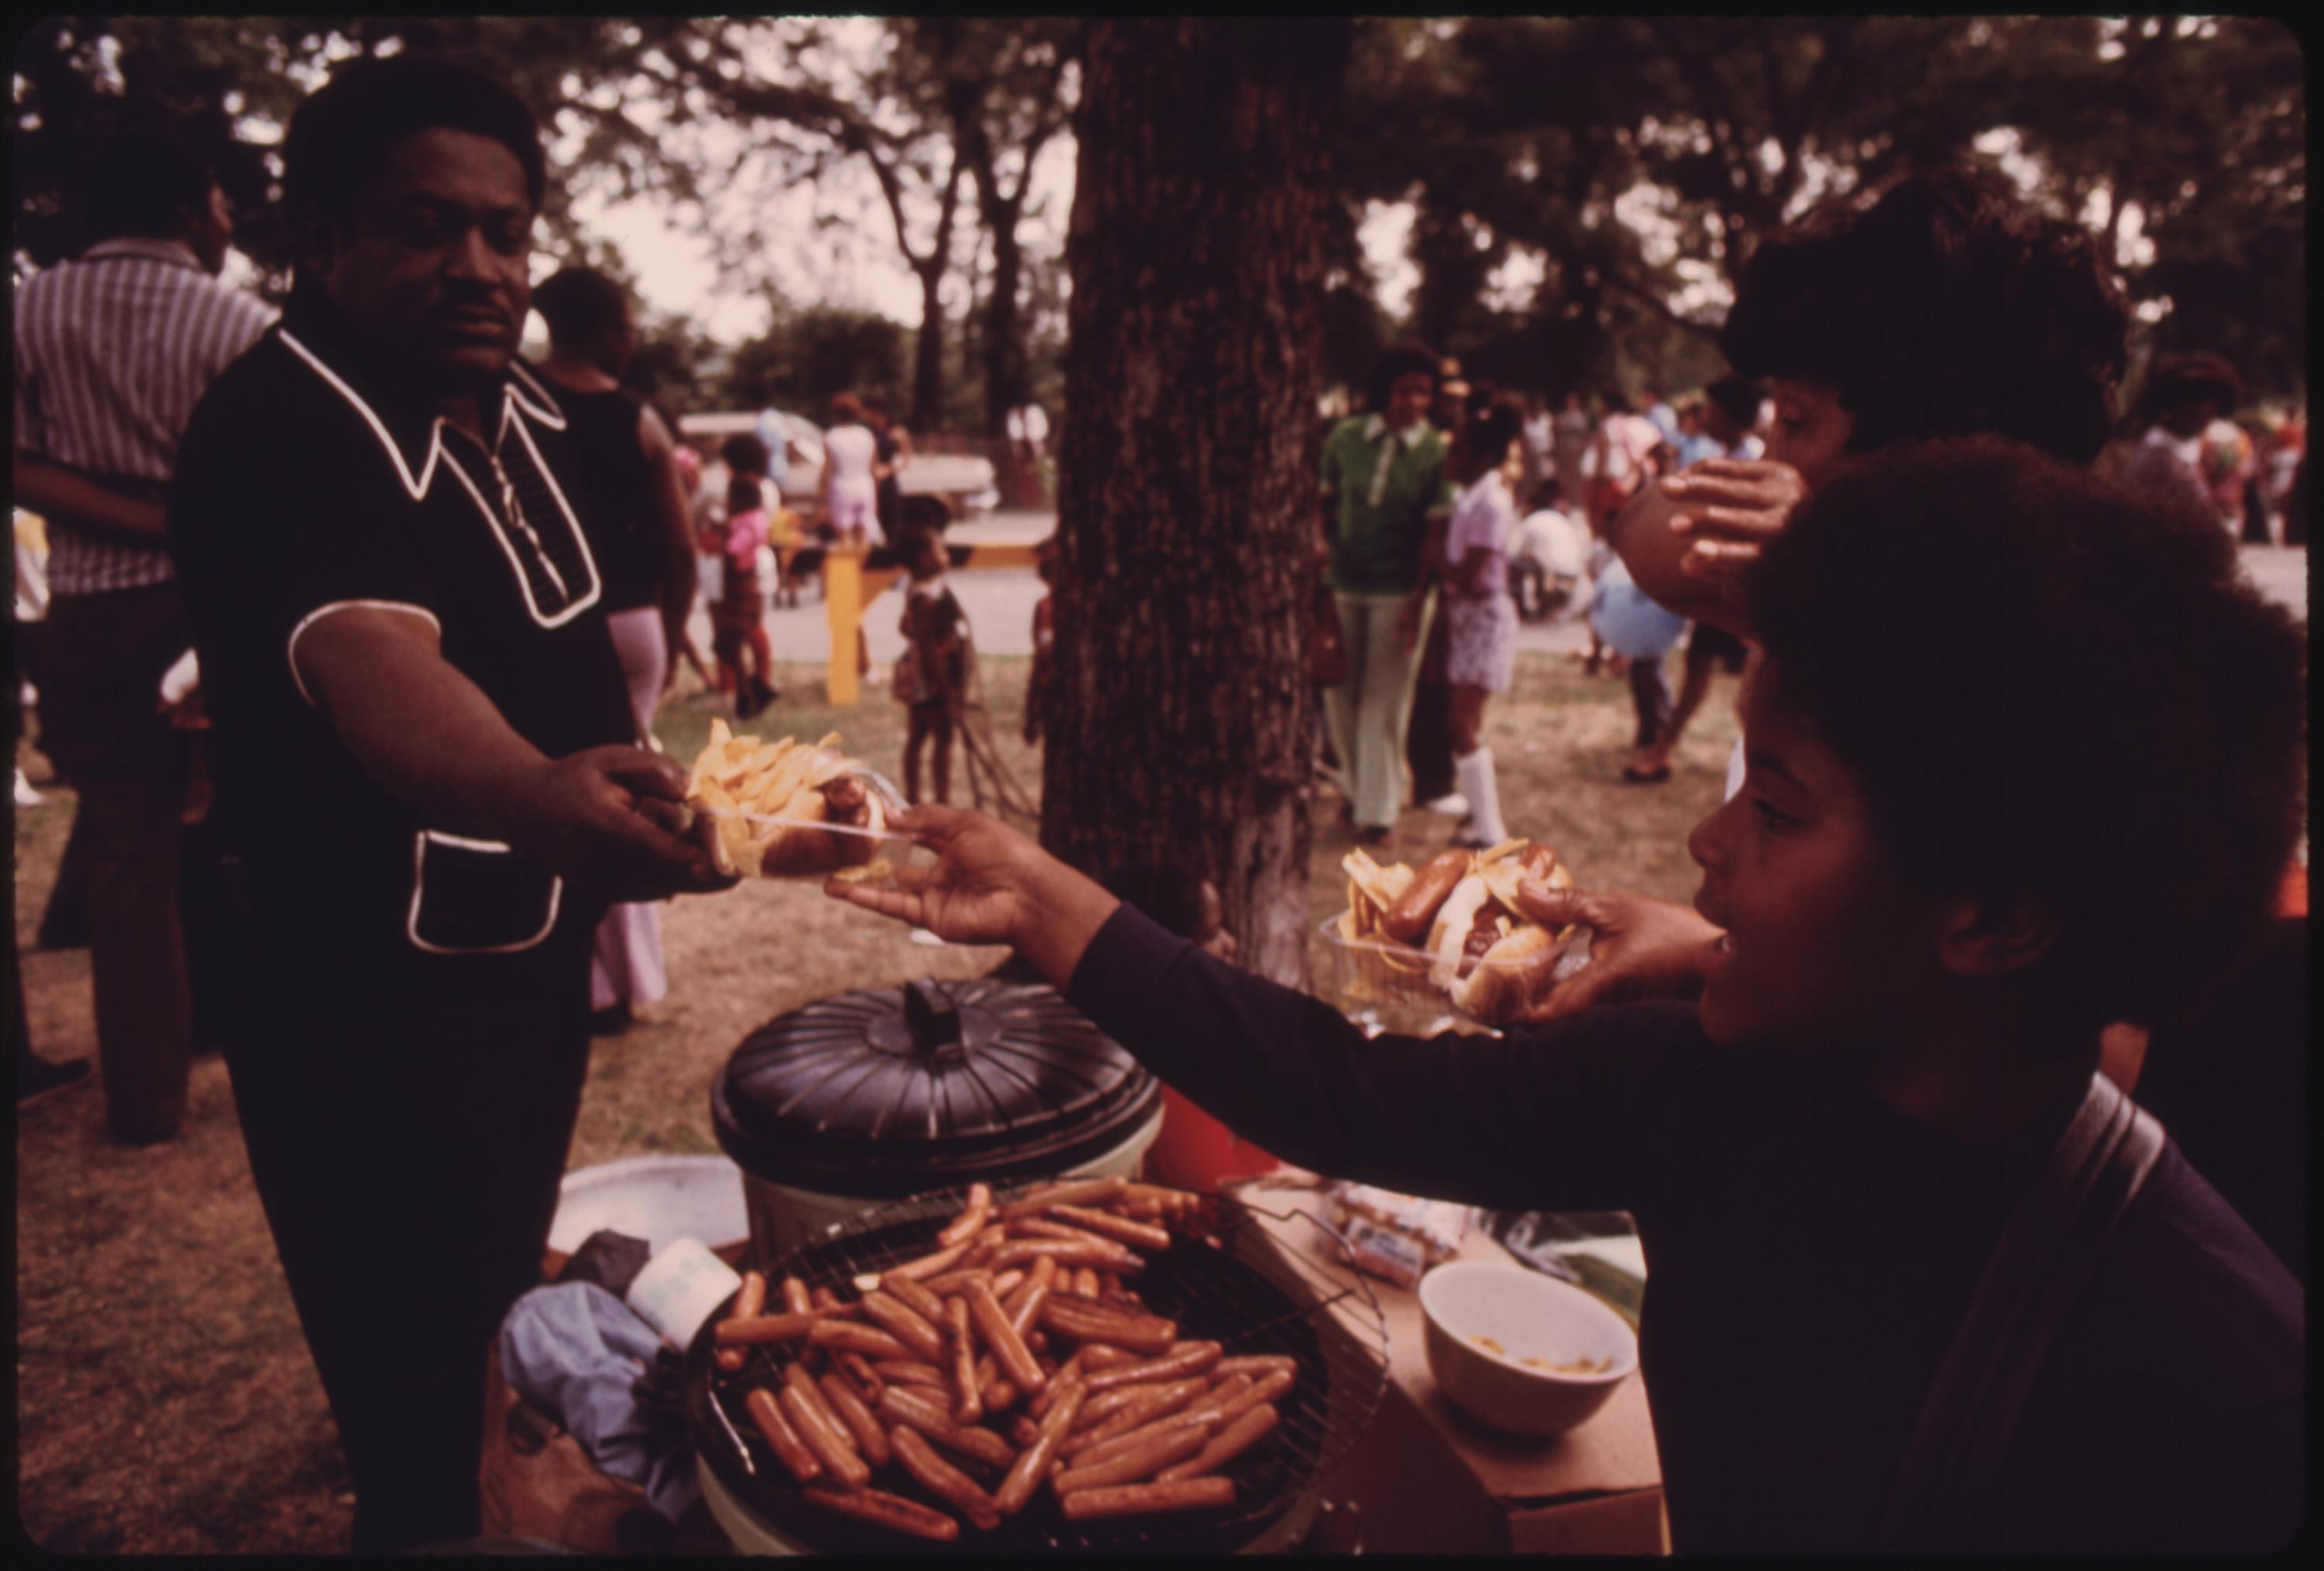 Washington Park On Chicago's South Side Where Many Black Families Enjoy Picnicking During The Summer, 07:1973 John H. White